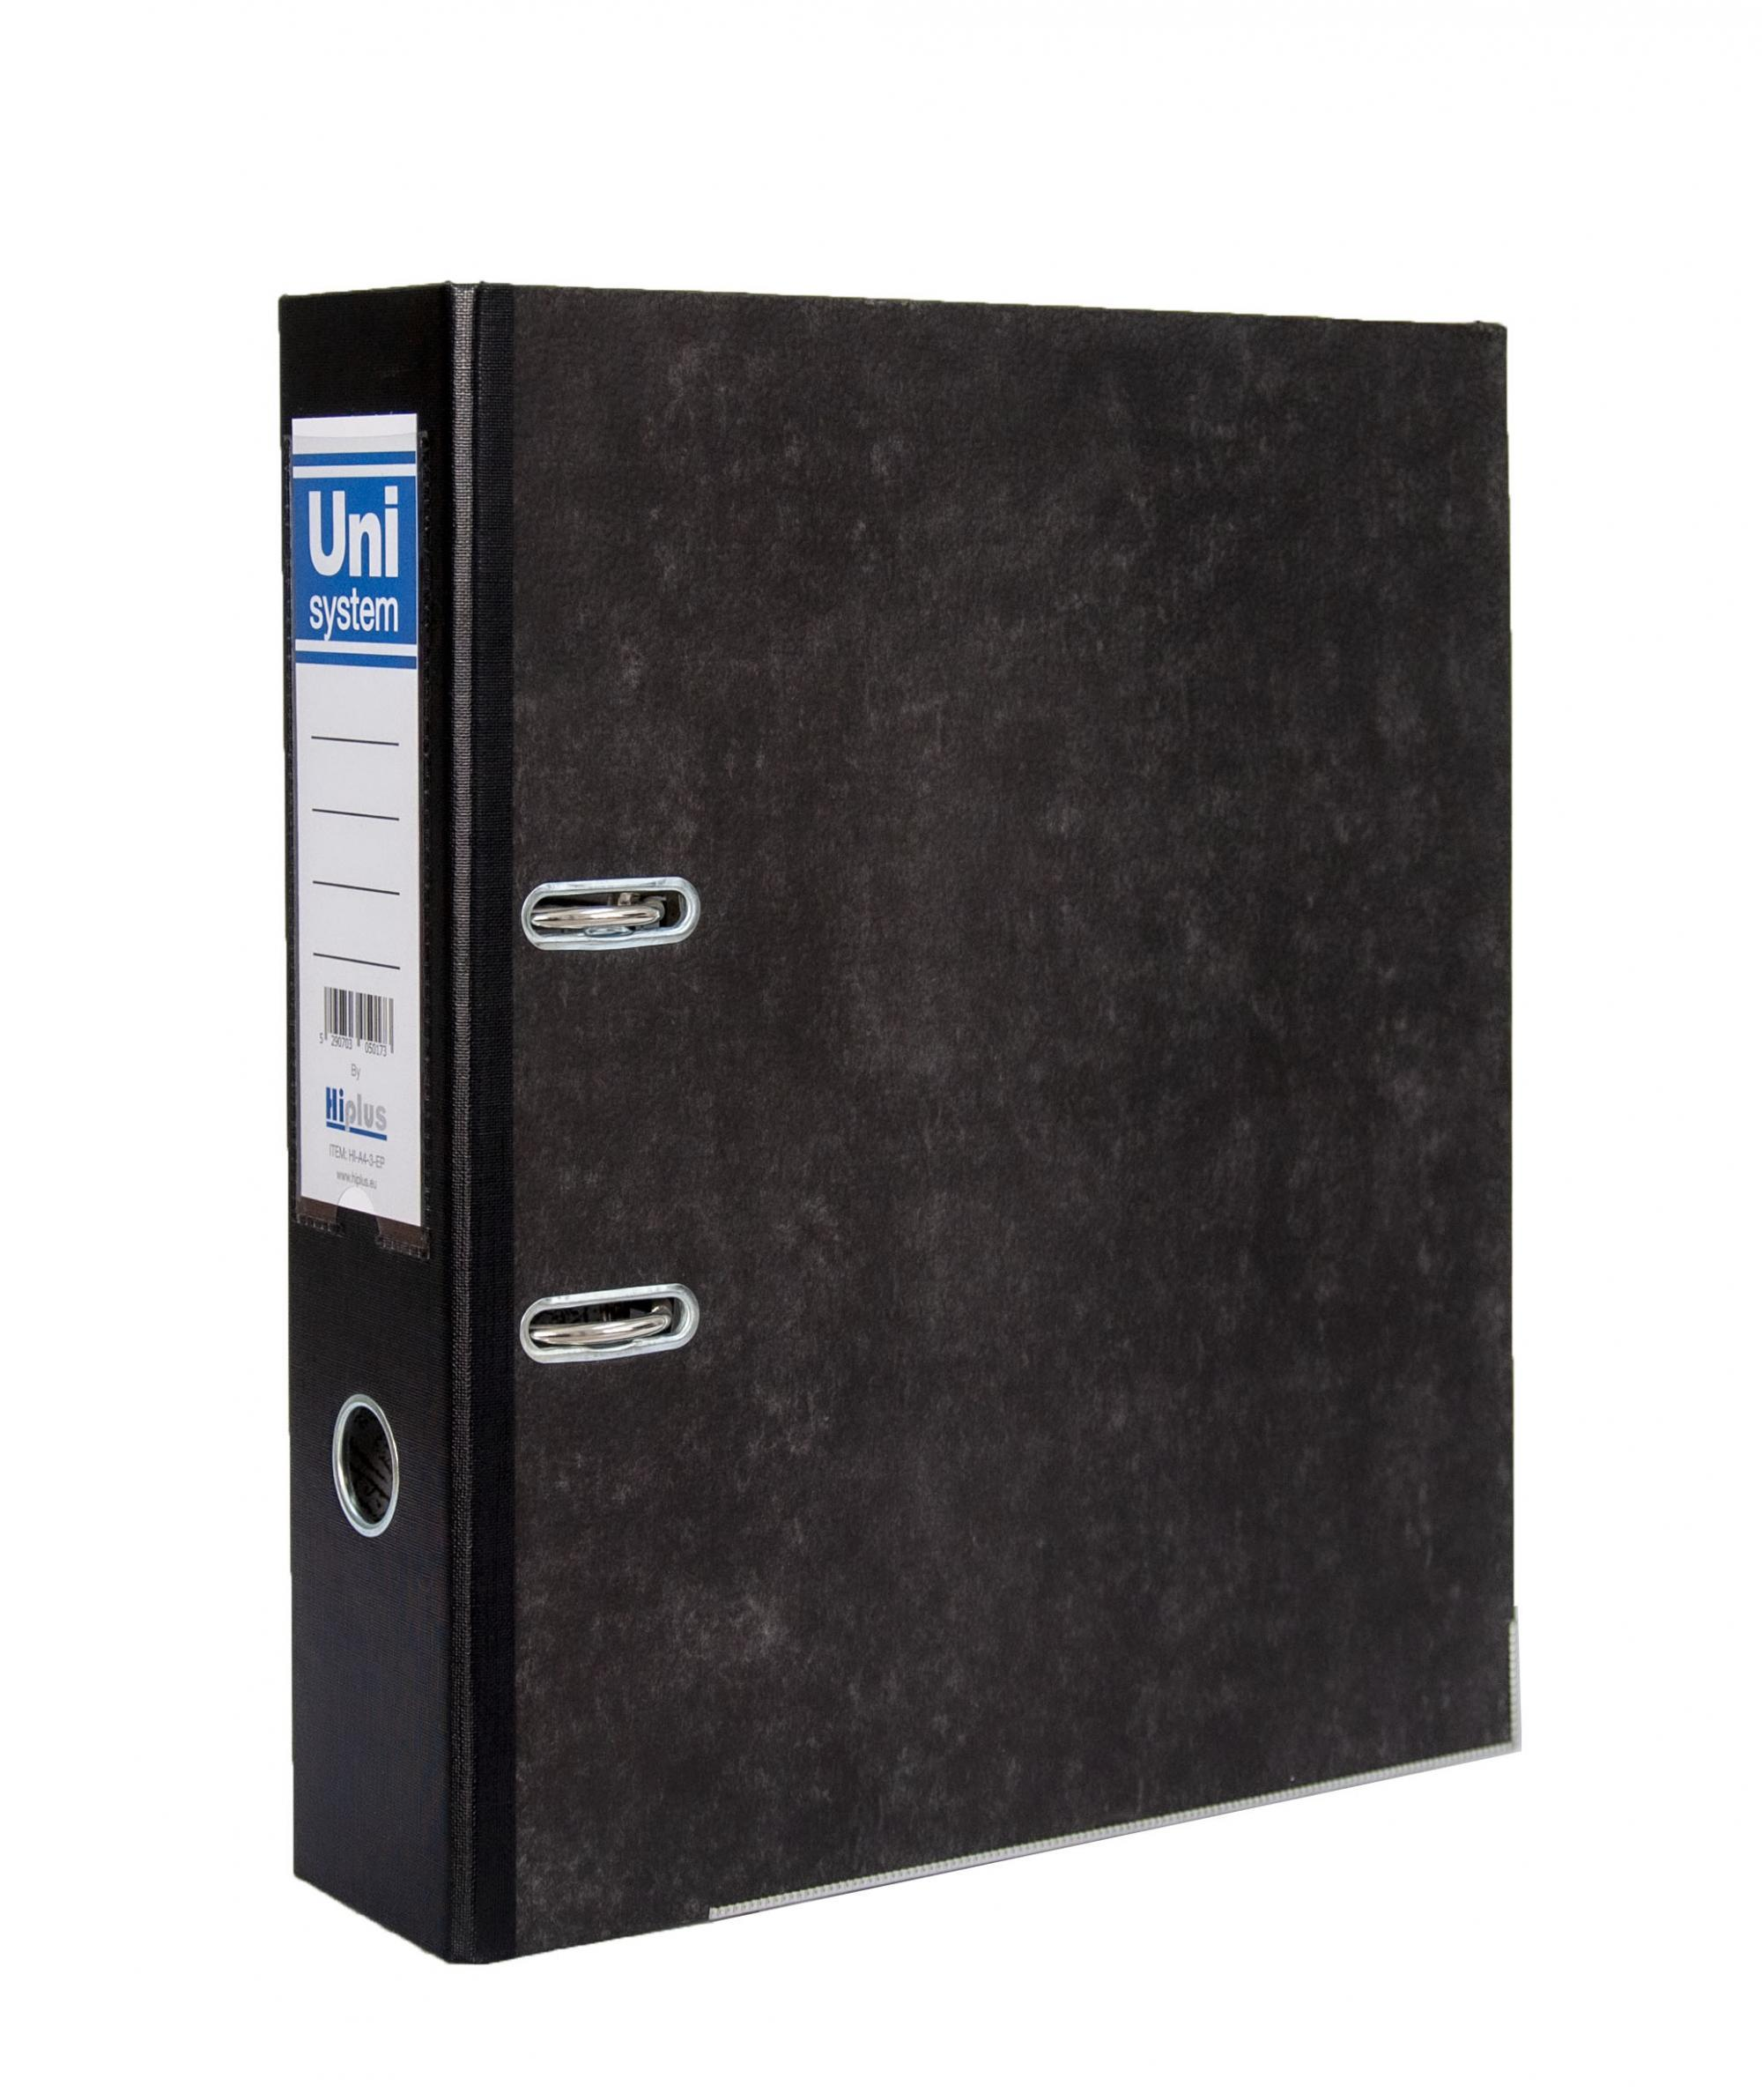 "HI-PLUS A4 LEVER ARCH FILE  - 2"" SPINE - EMBOSSED PAPER"